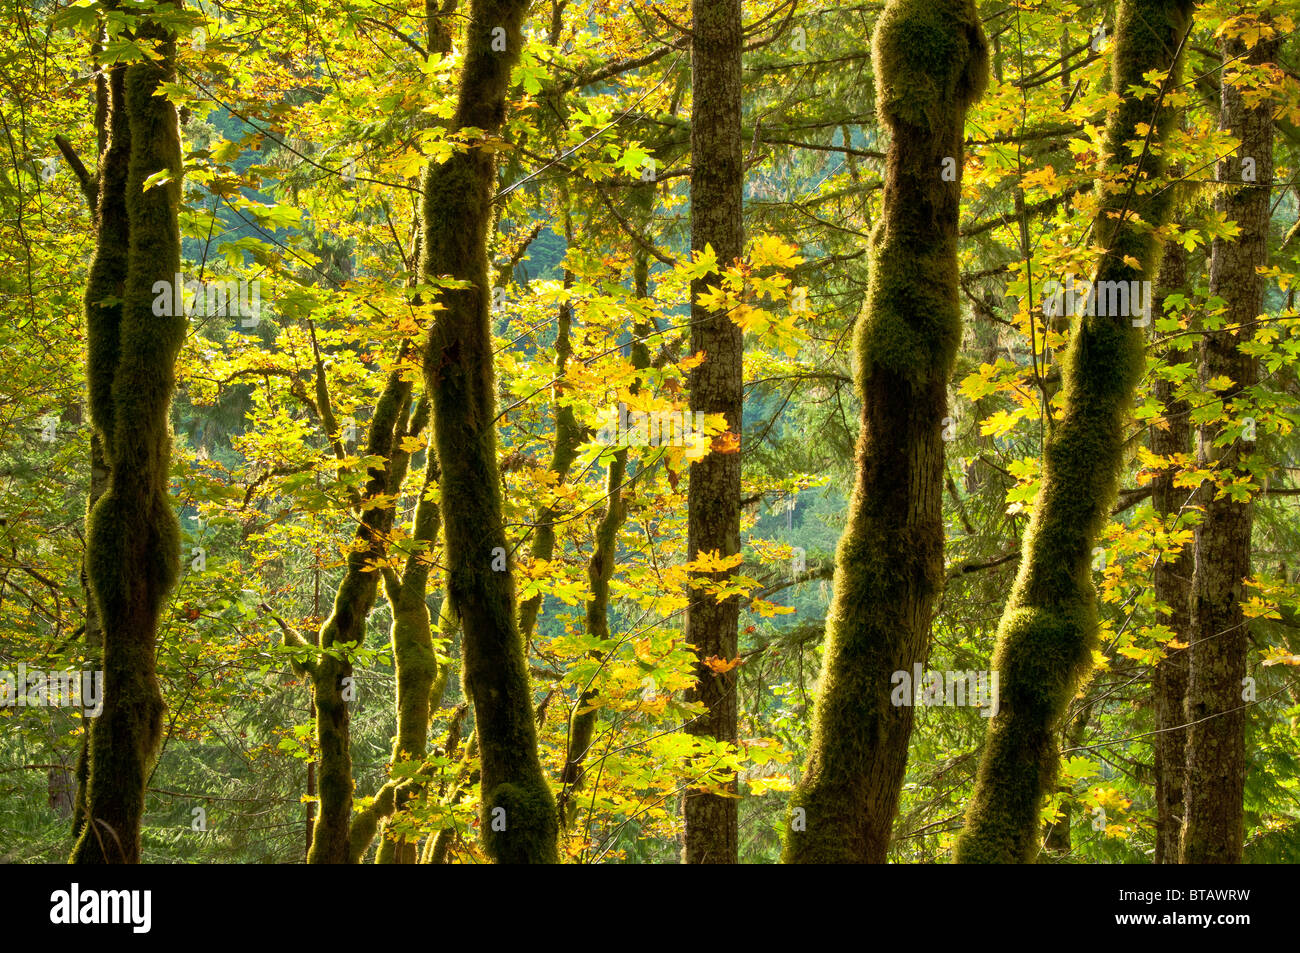 Bigleaf maple trees along Cascade River Road, Mount Baker-Snoqualmie National Forest, North Cascades, Washington. - Stock Image